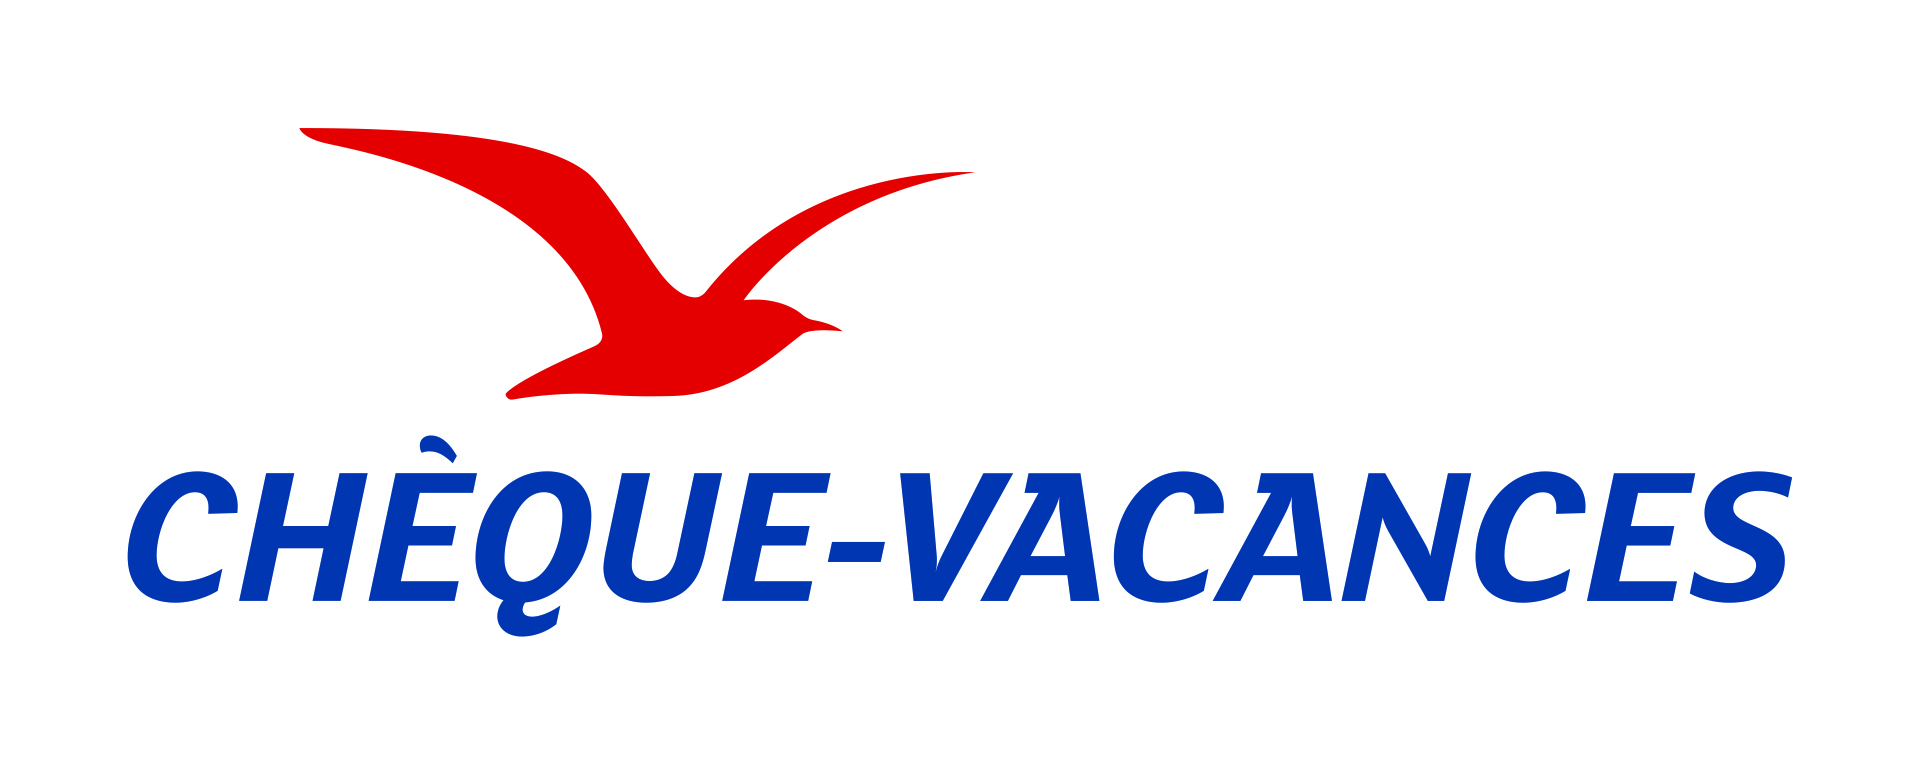 https://www.ancv.com/sites/default/files/medias/ancv_logo_cheque-vacances_4c.jpg